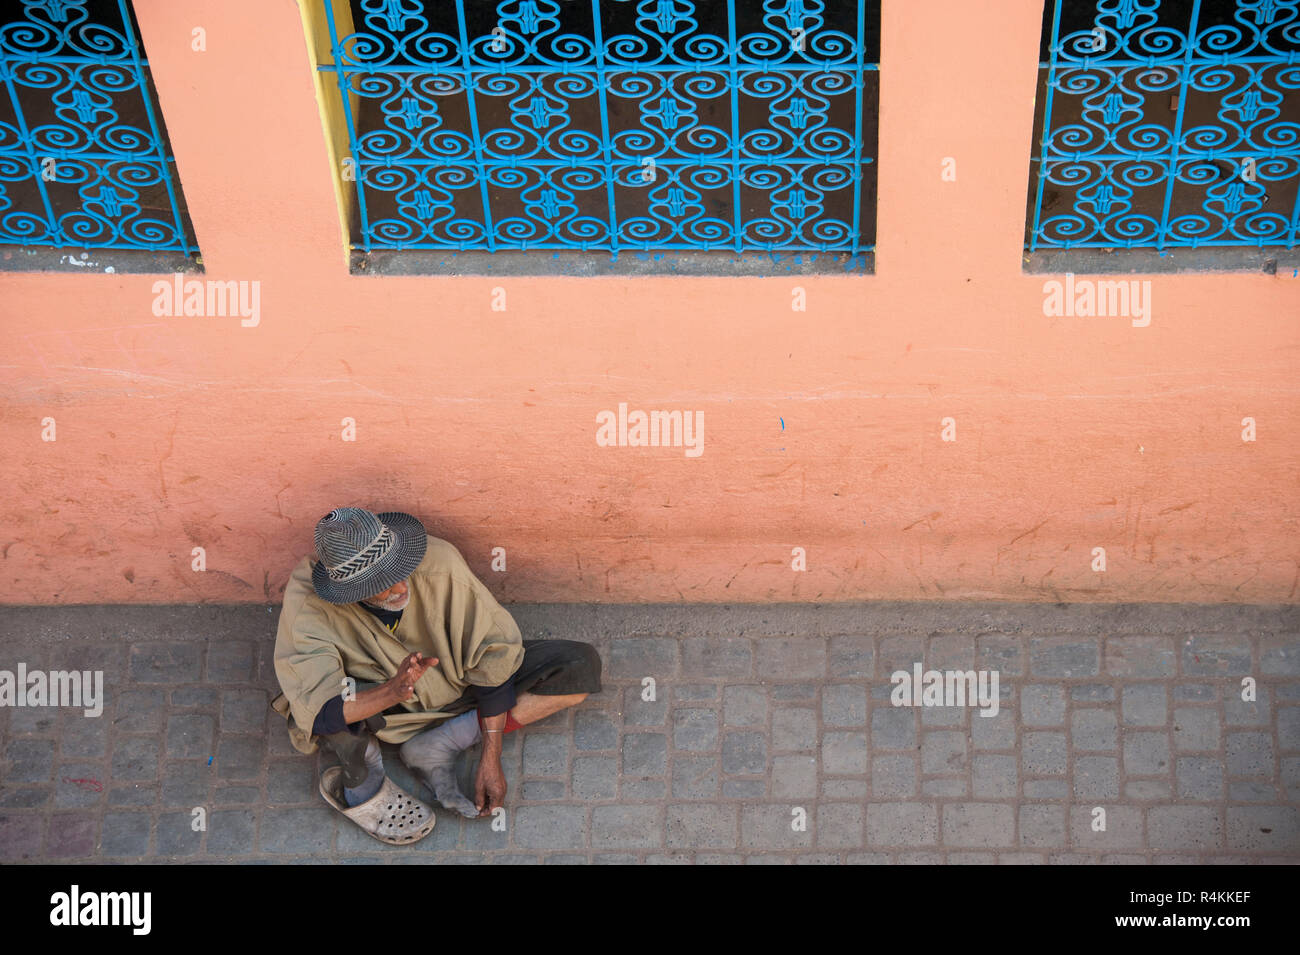 18-04-11. Marrakech, Morocco.  A beggar in the medina, photographed from above. Photo © Simon Grosset / Q Photography - Stock Image